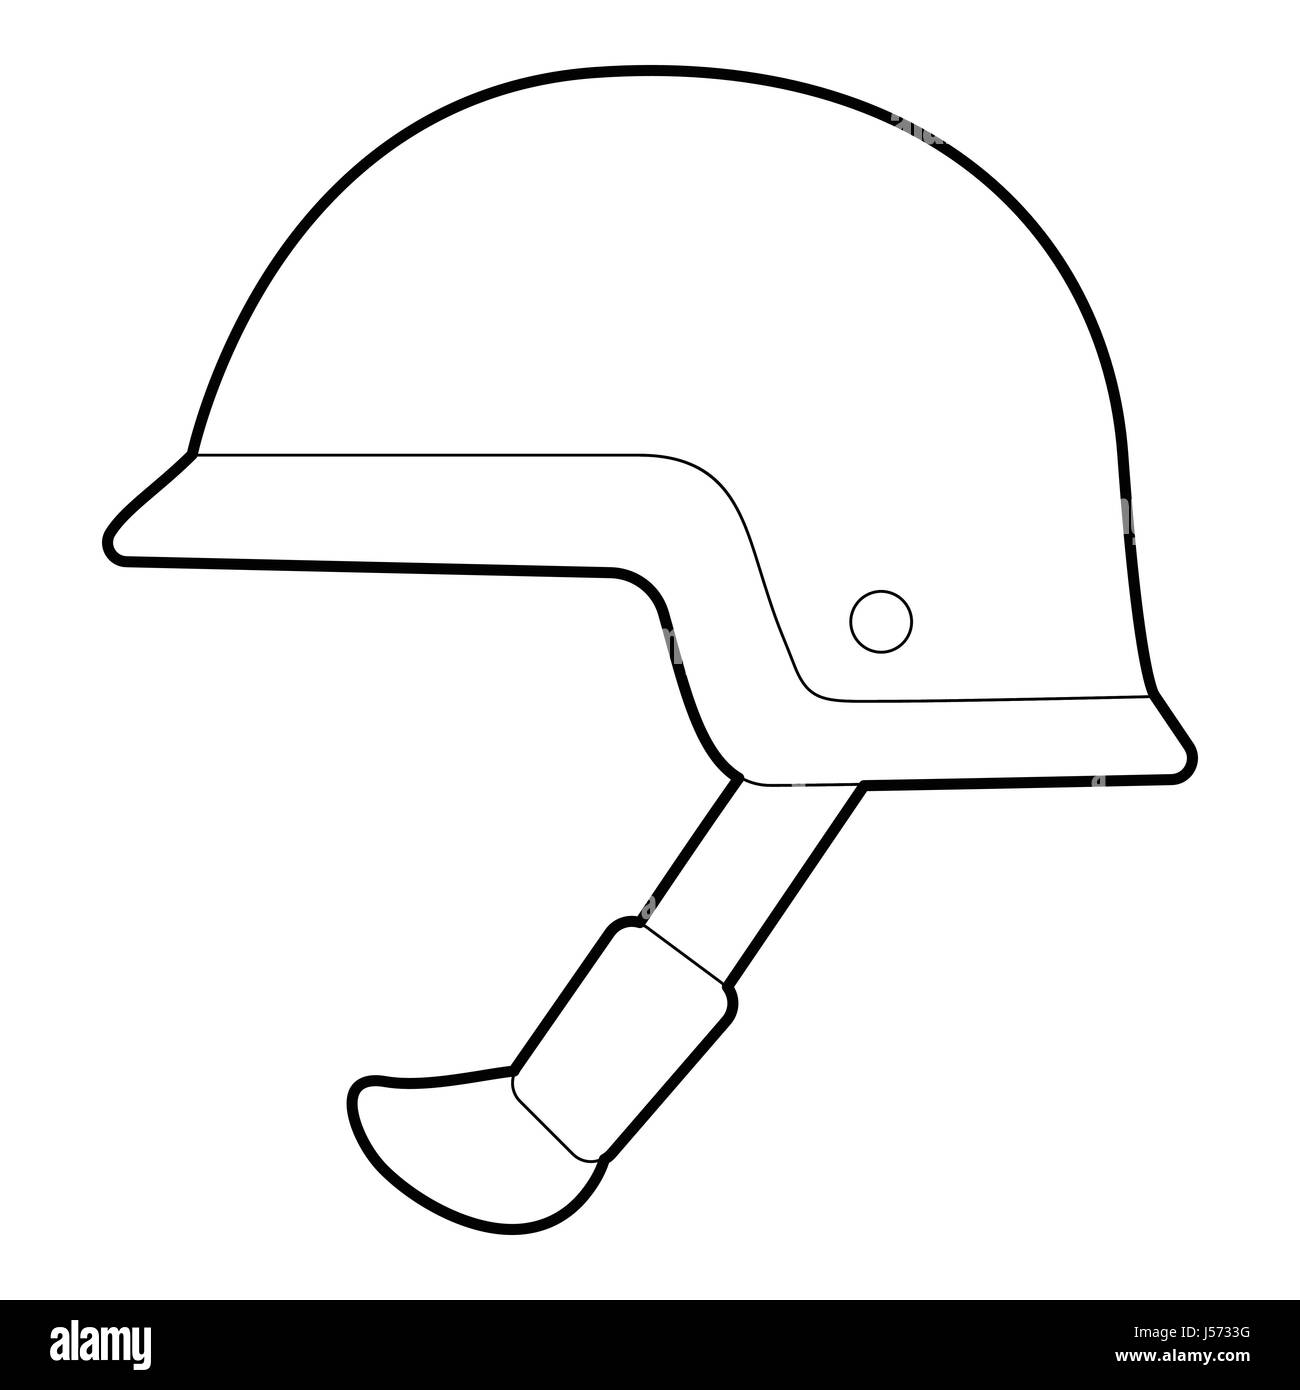 Soldier Helmet Black and White Stock Photos & Images - Alamy